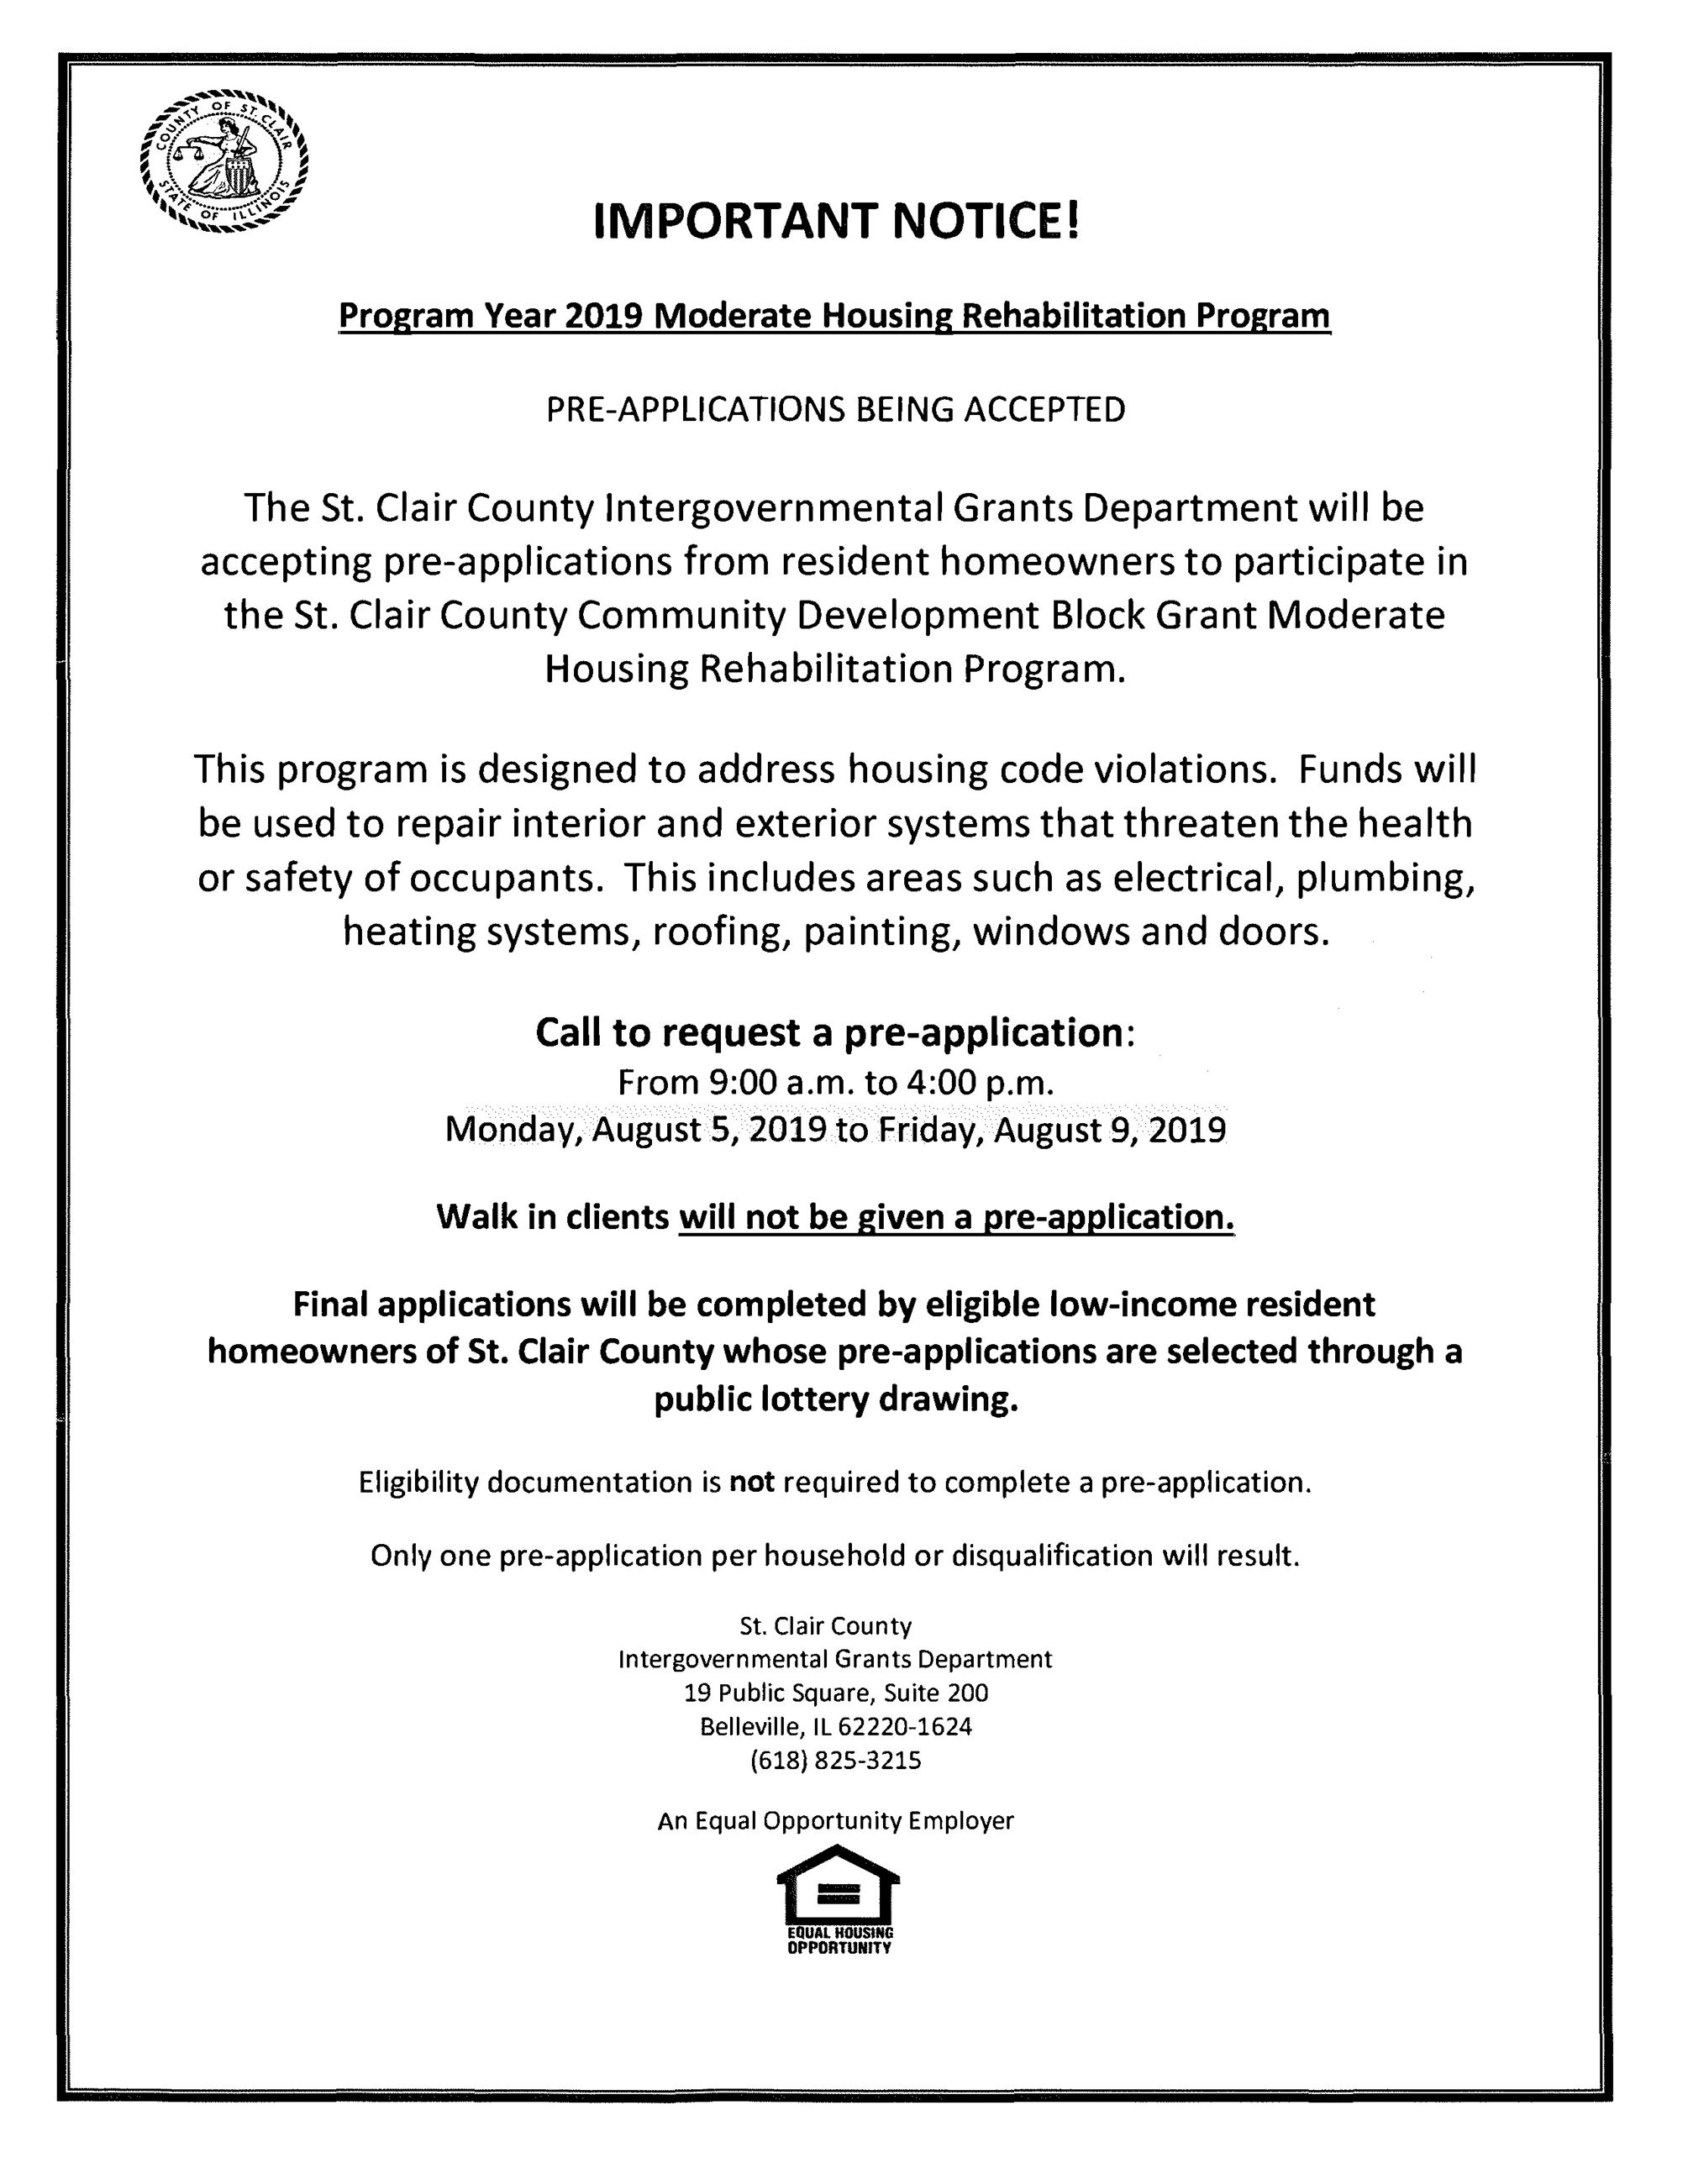 Program Year 2019 Moderate Housing Rehabilitation Program